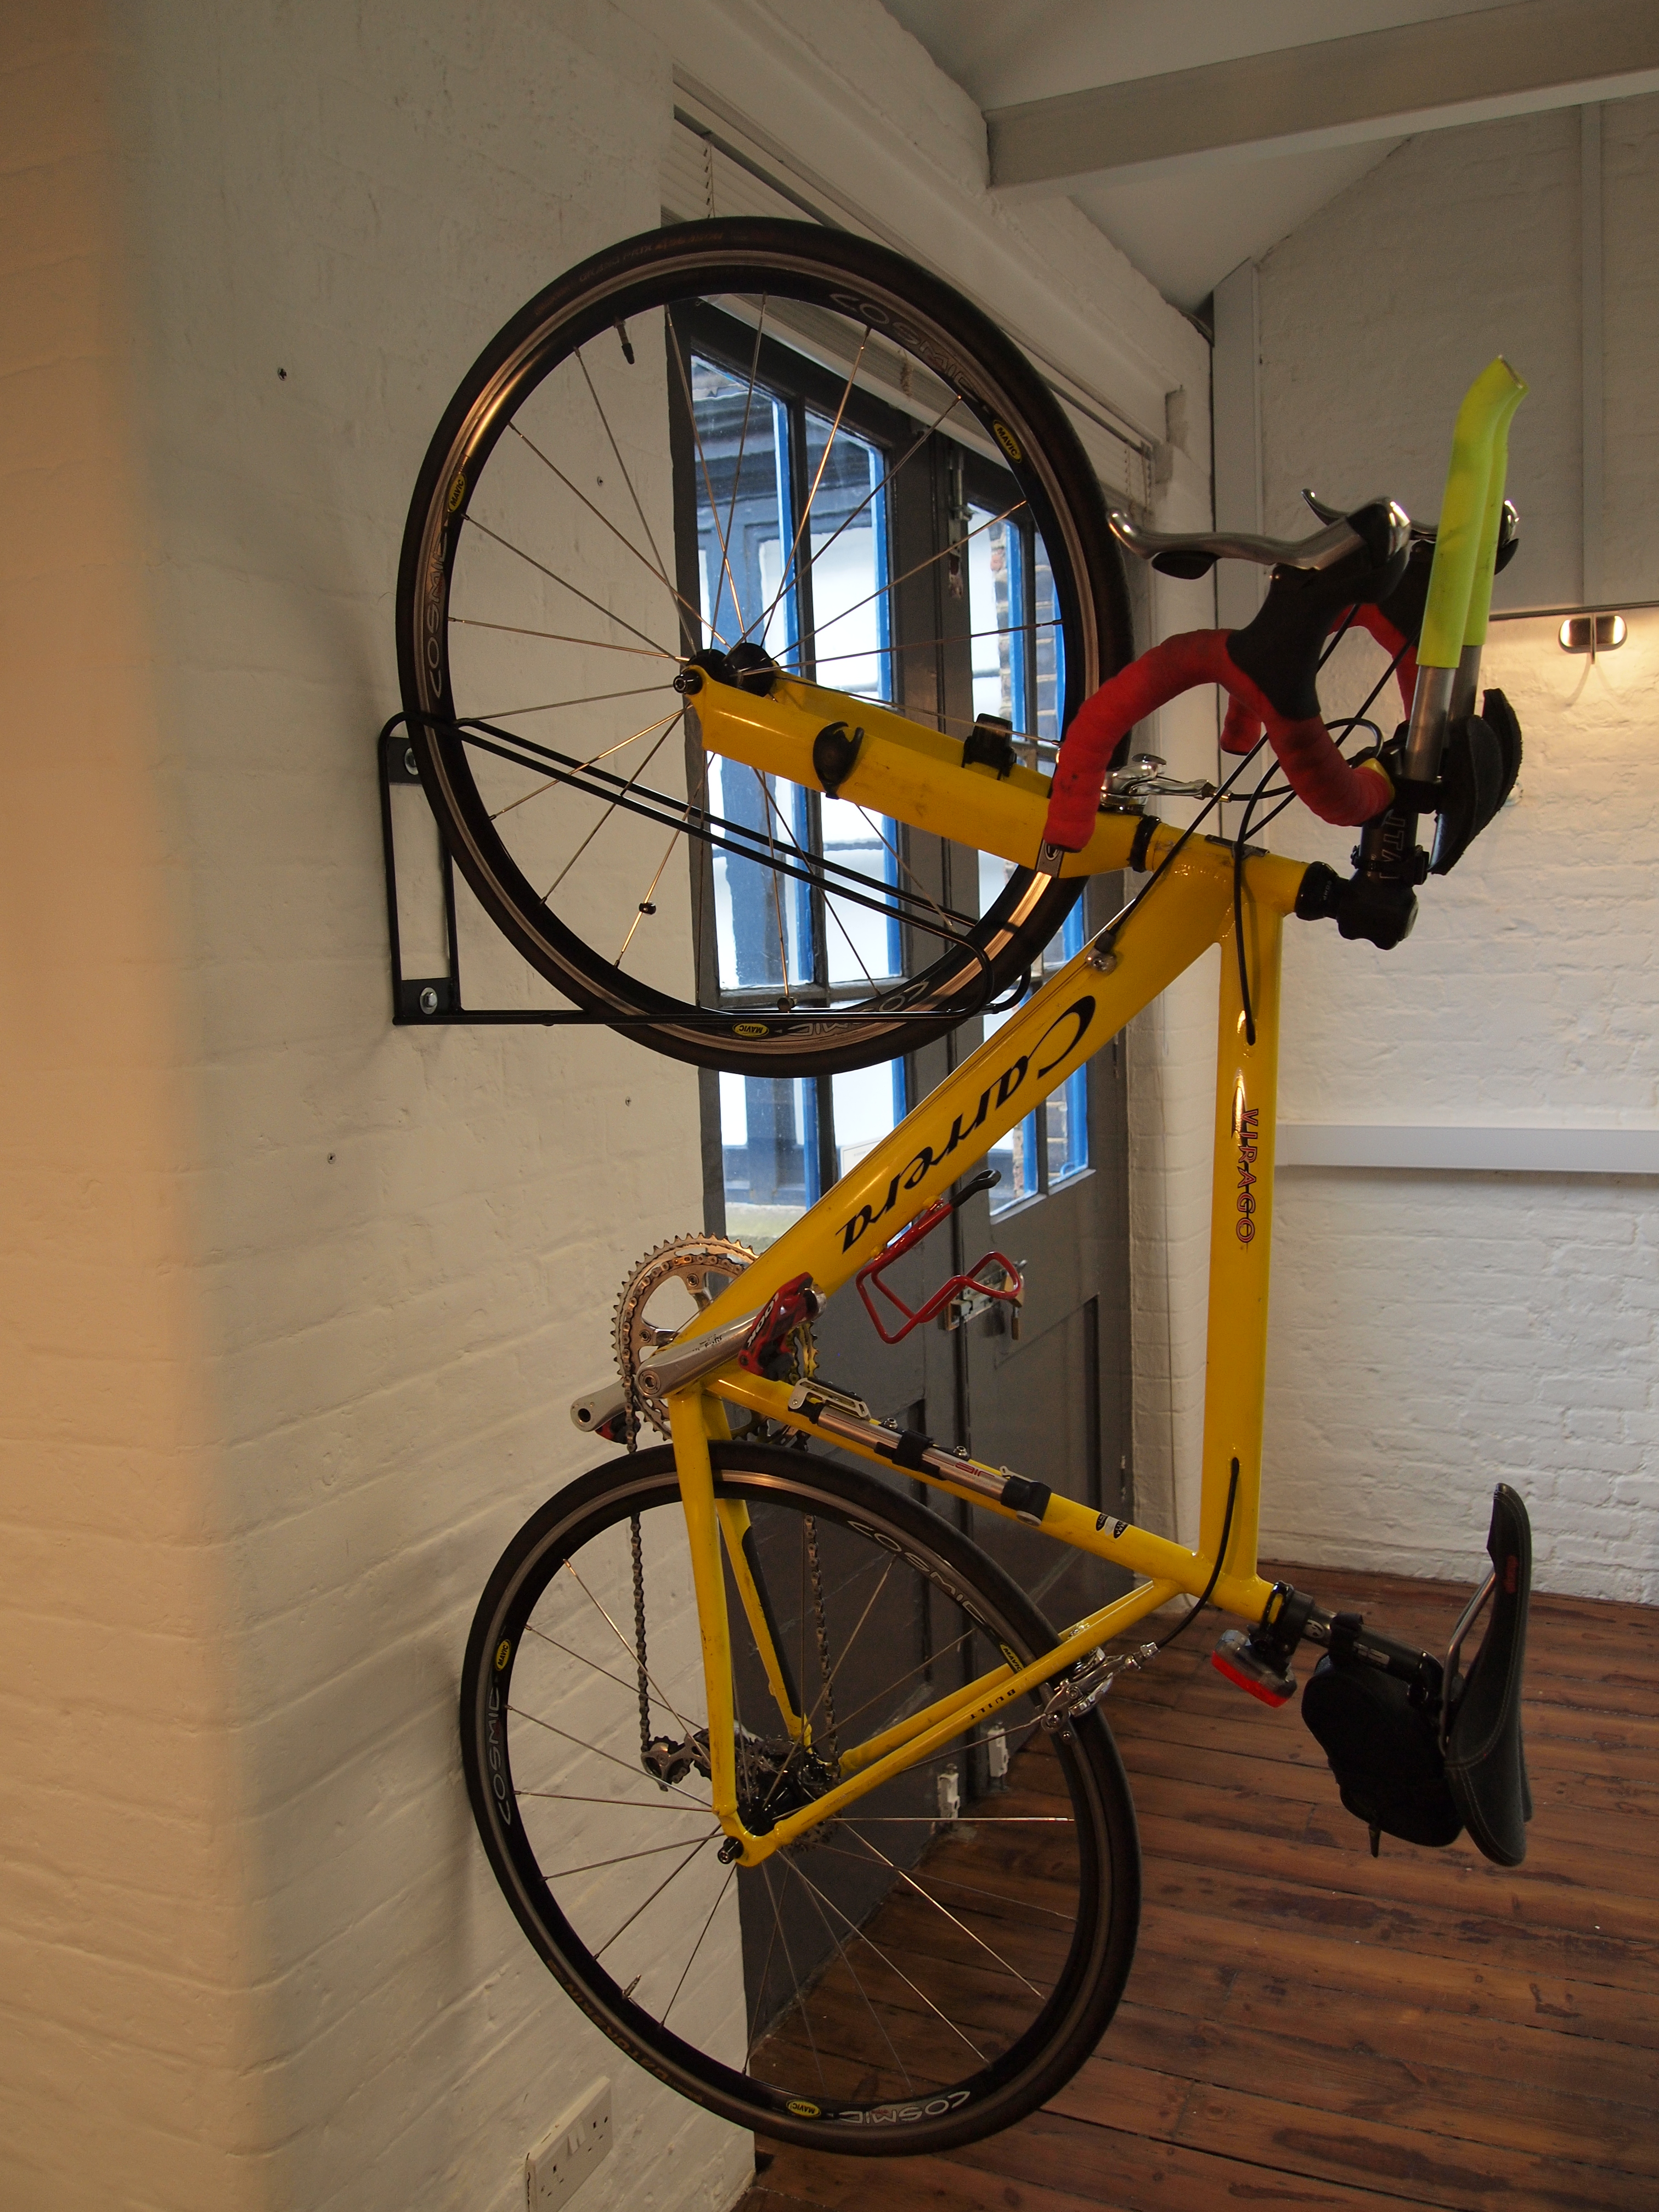 kayak storage ideas for garage - Bike Dock Fahrrad Wandhalterung